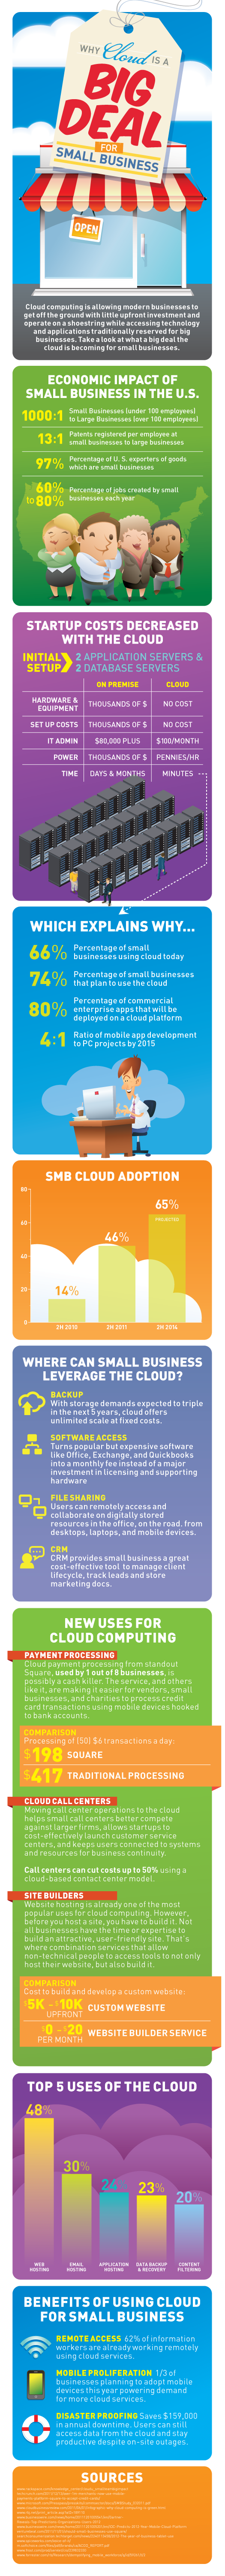 cloud summit 2014 is for small business